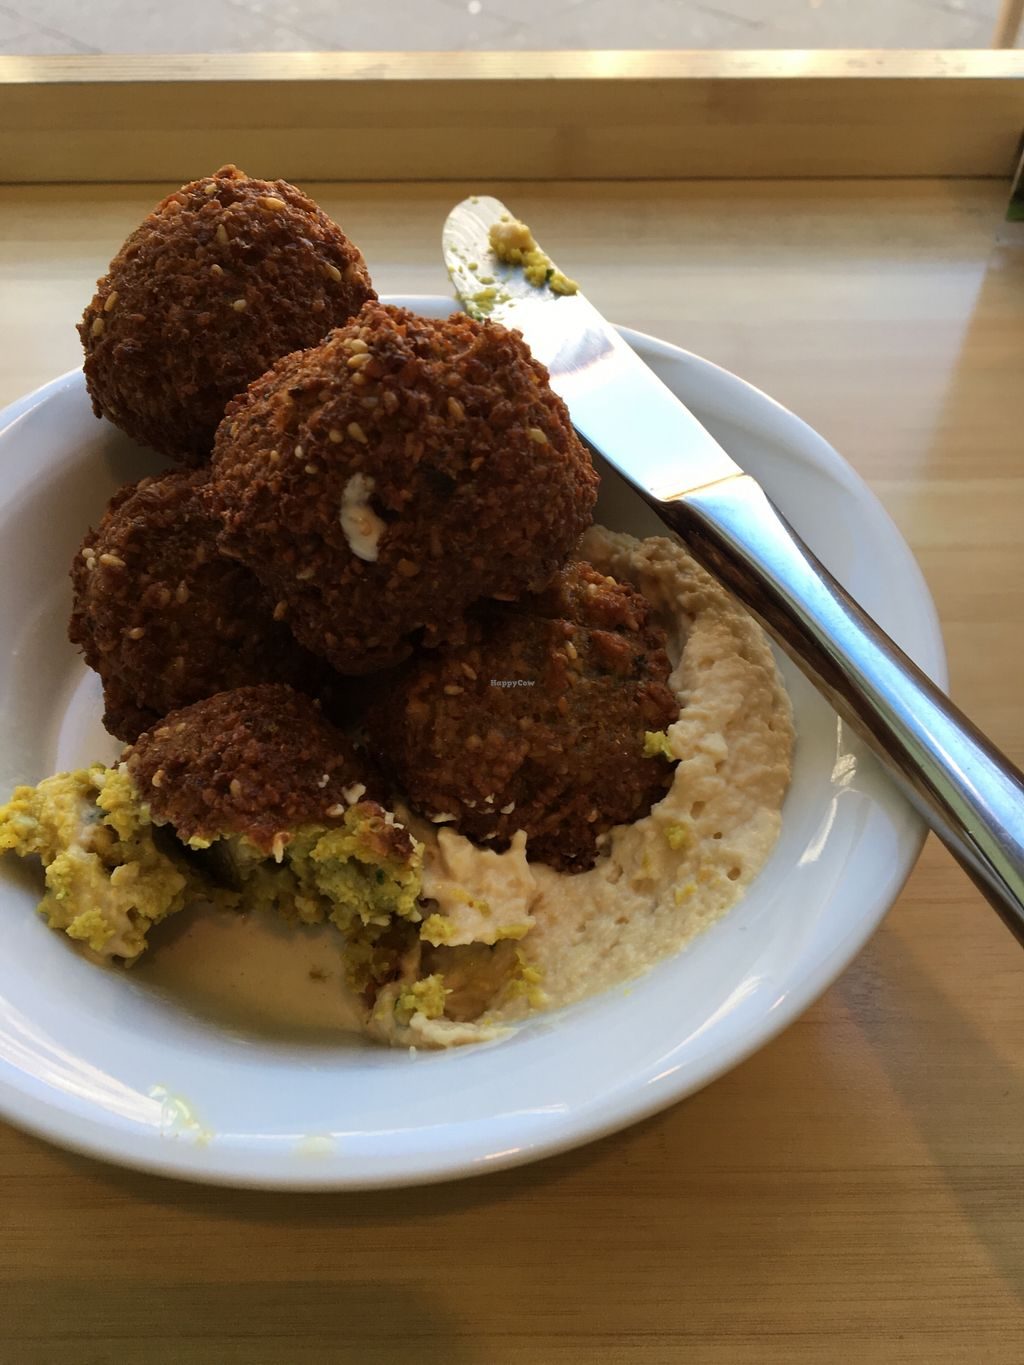 """Photo of Boussi Falafel - Berlin  by <a href=""""/members/profile/Mycall"""">Mycall</a> <br/>Small falafel box/bowl  <br/> March 1, 2018  - <a href='/contact/abuse/image/24981/365367'>Report</a>"""